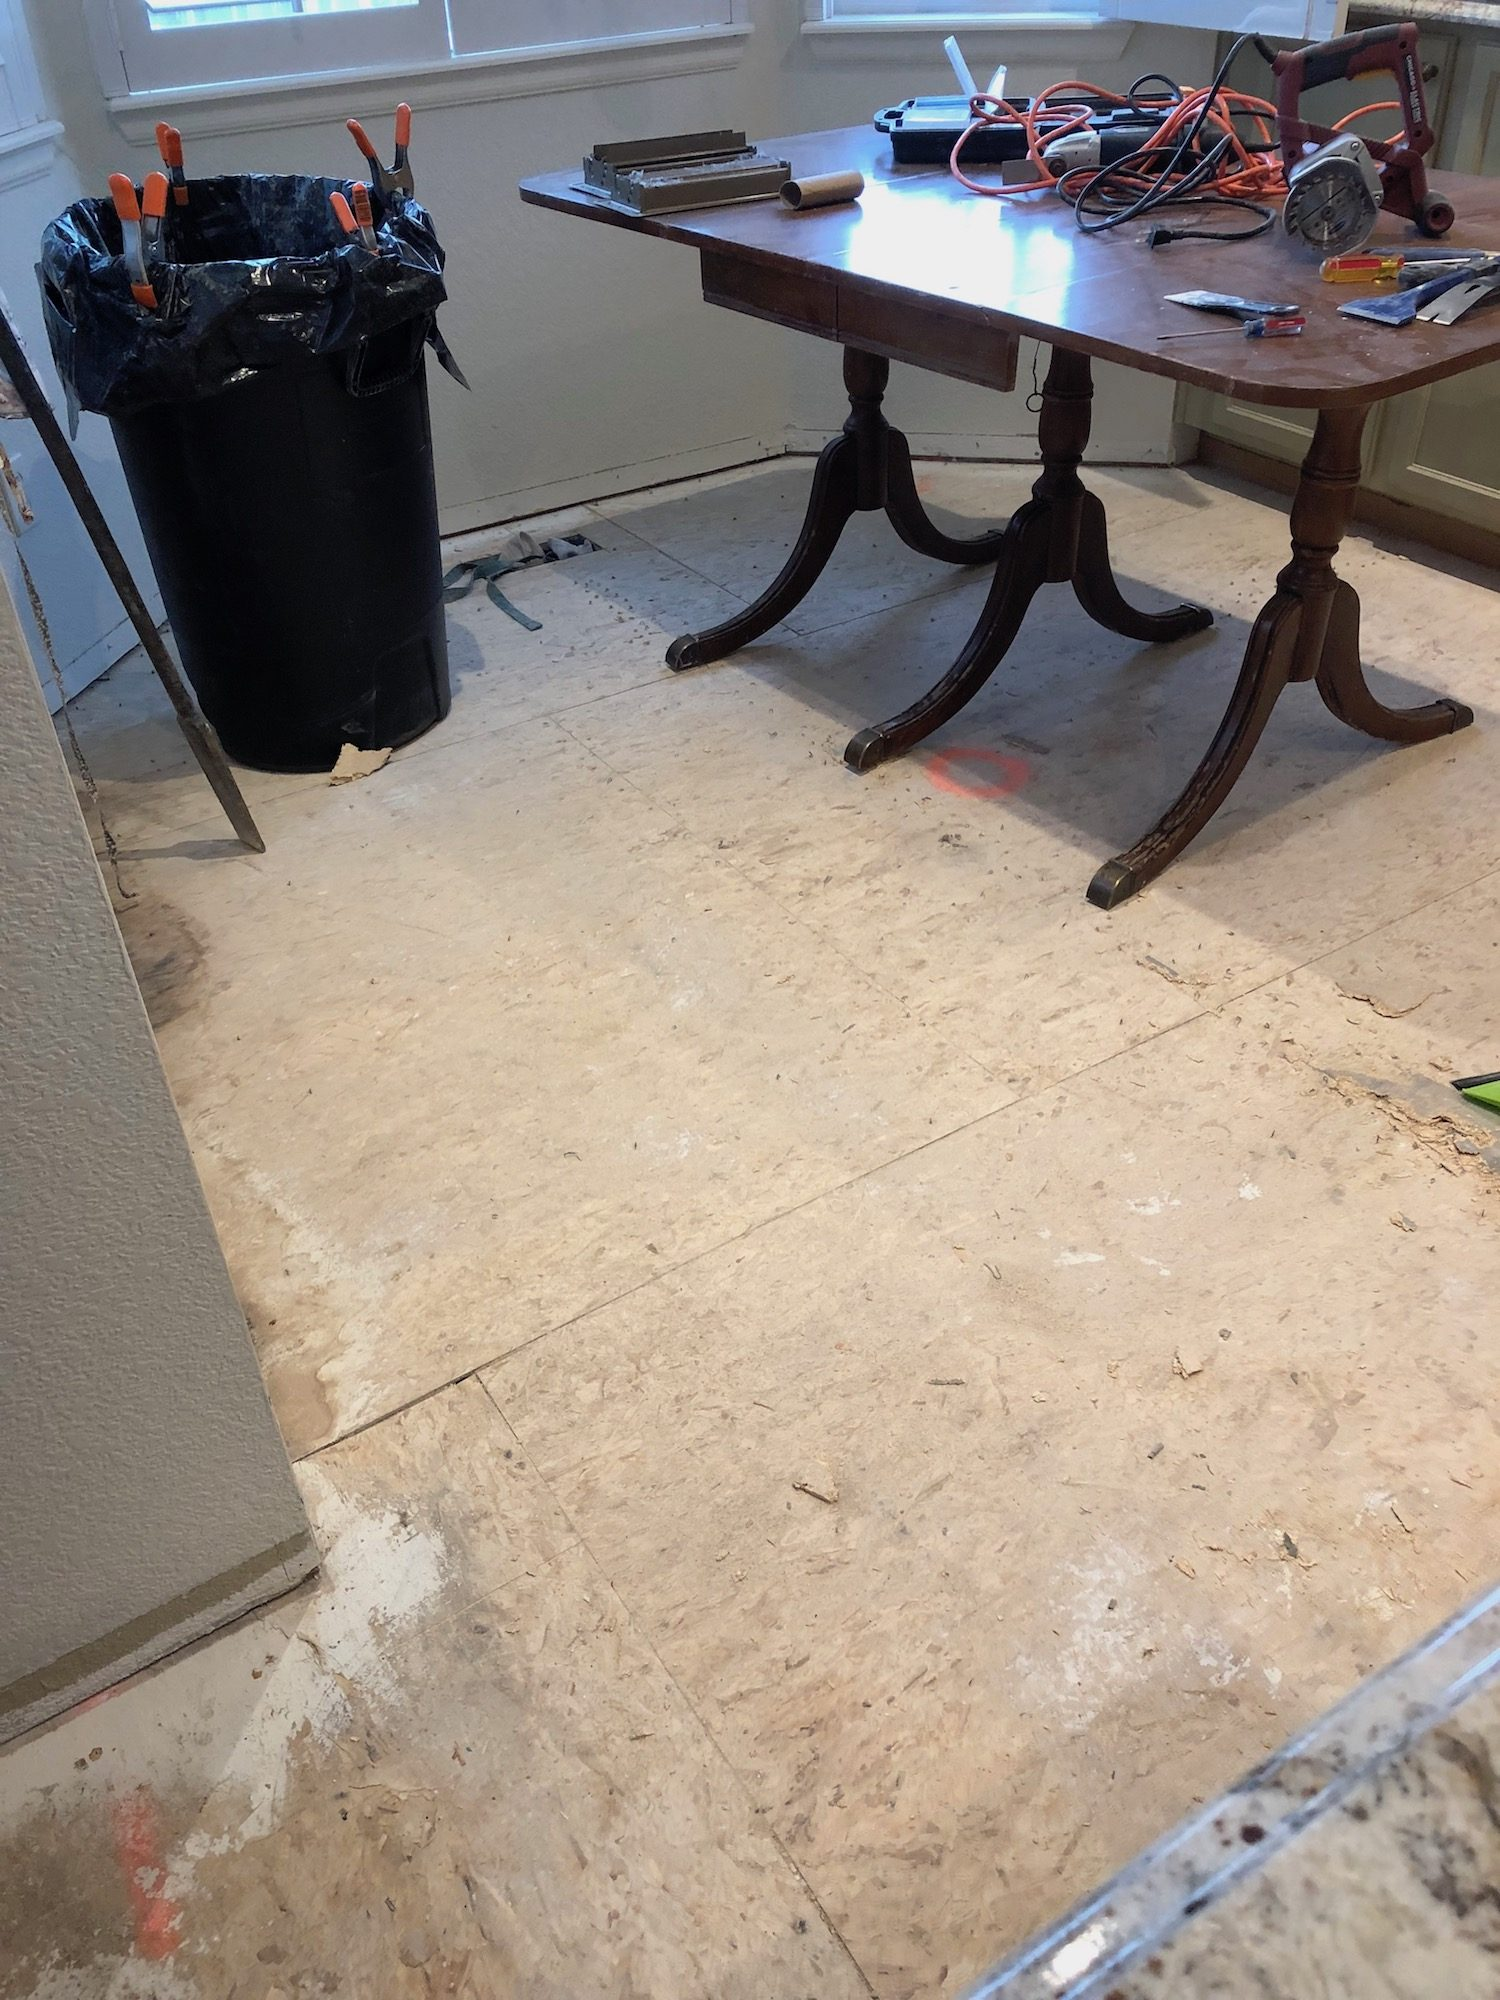 Demo begins: Tackling the  removal of the linoleum floors.